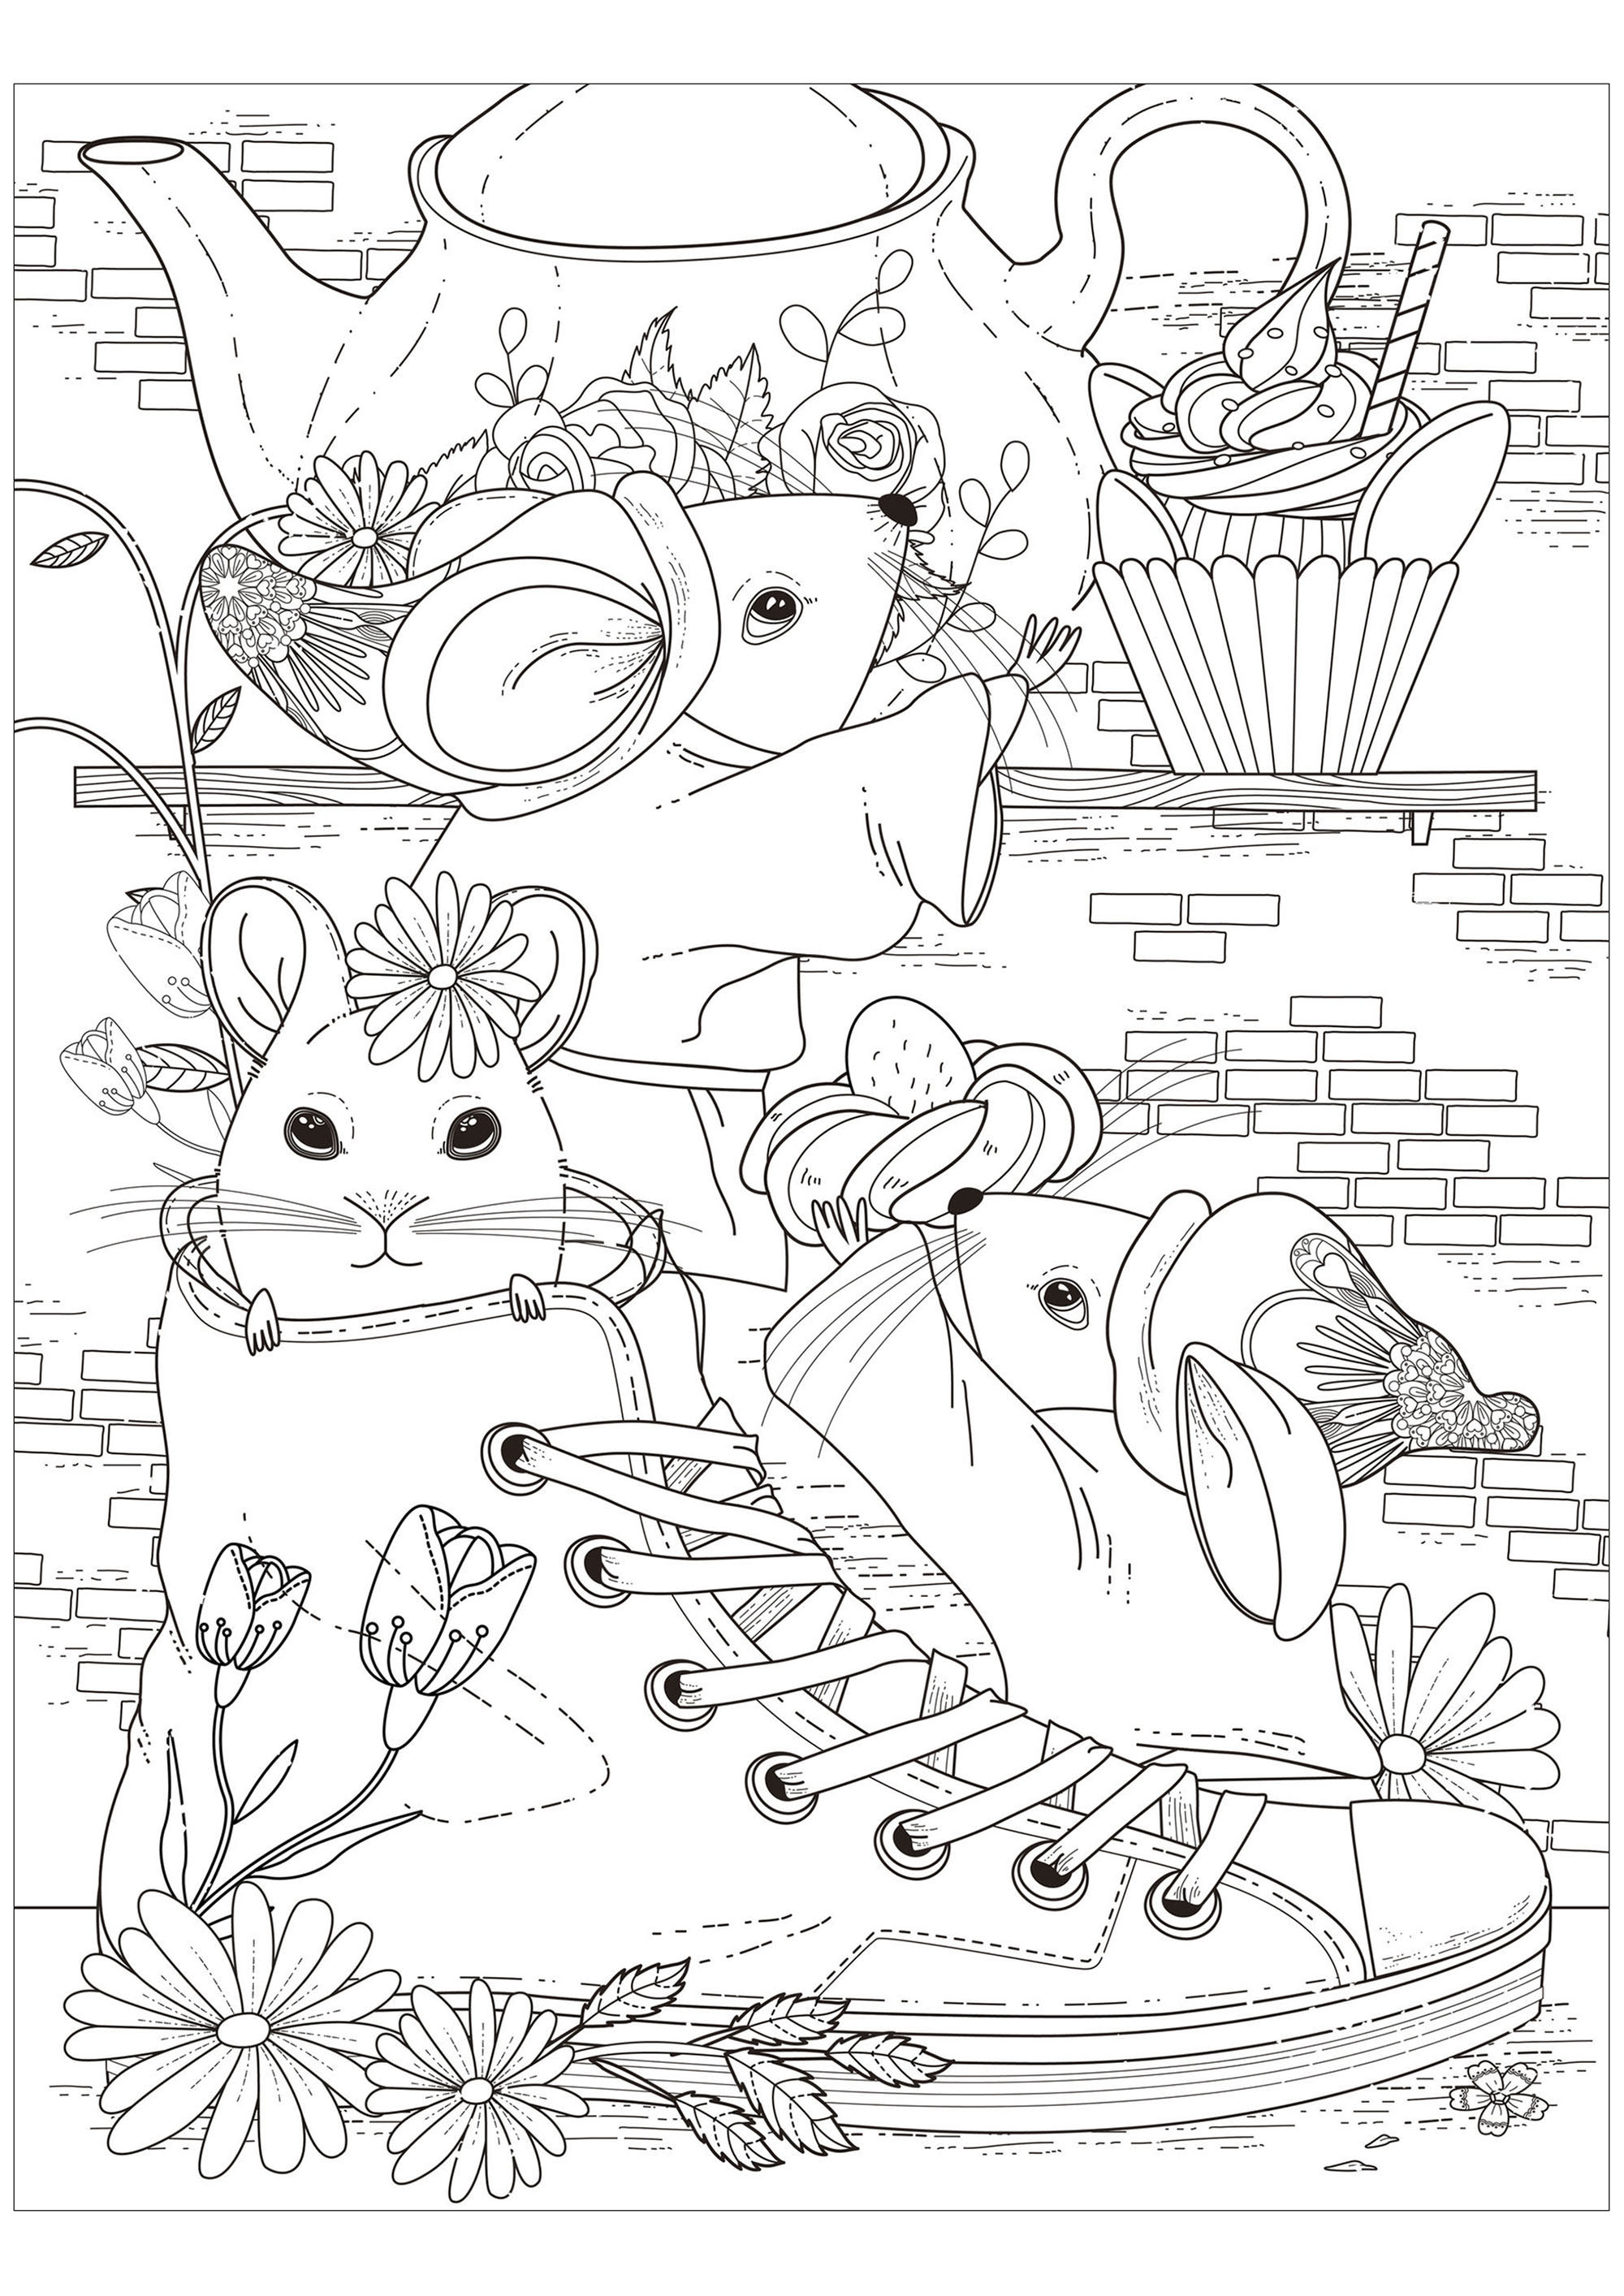 The tea party of the three mice - Mouses Adult Coloring Pages